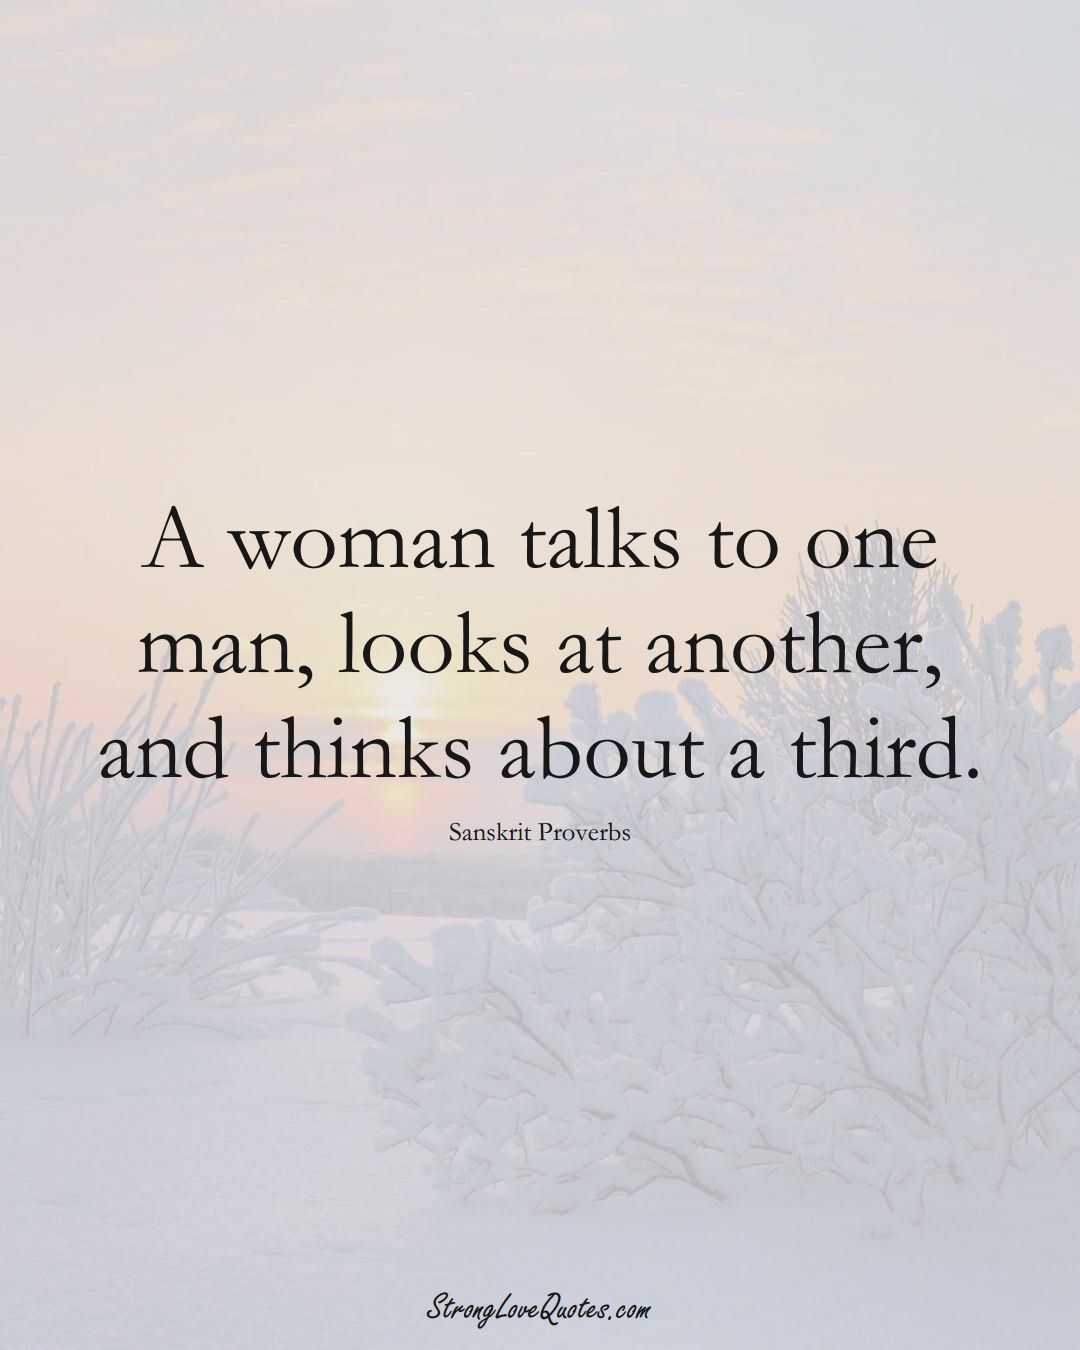 A woman talks to one man, looks at another, and thinks about a third. (Sanskrit Sayings);  #aVarietyofCulturesSayings